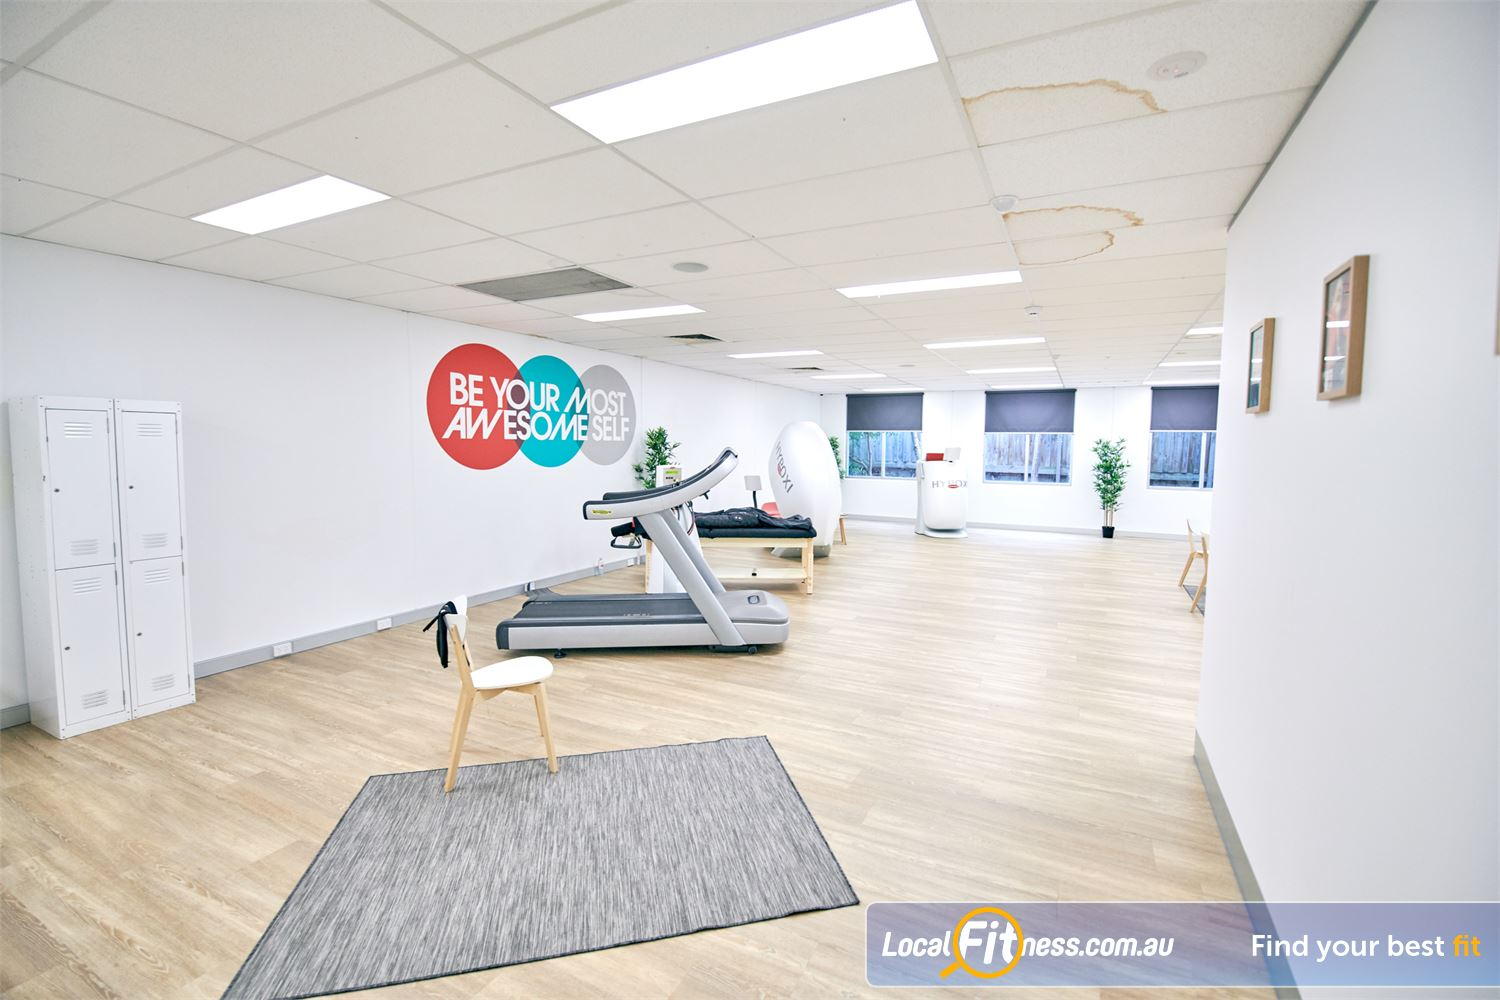 HYPOXI Weight Loss Near Camperdown HYPOXI Newtown is great for men looking to lose those love handles.